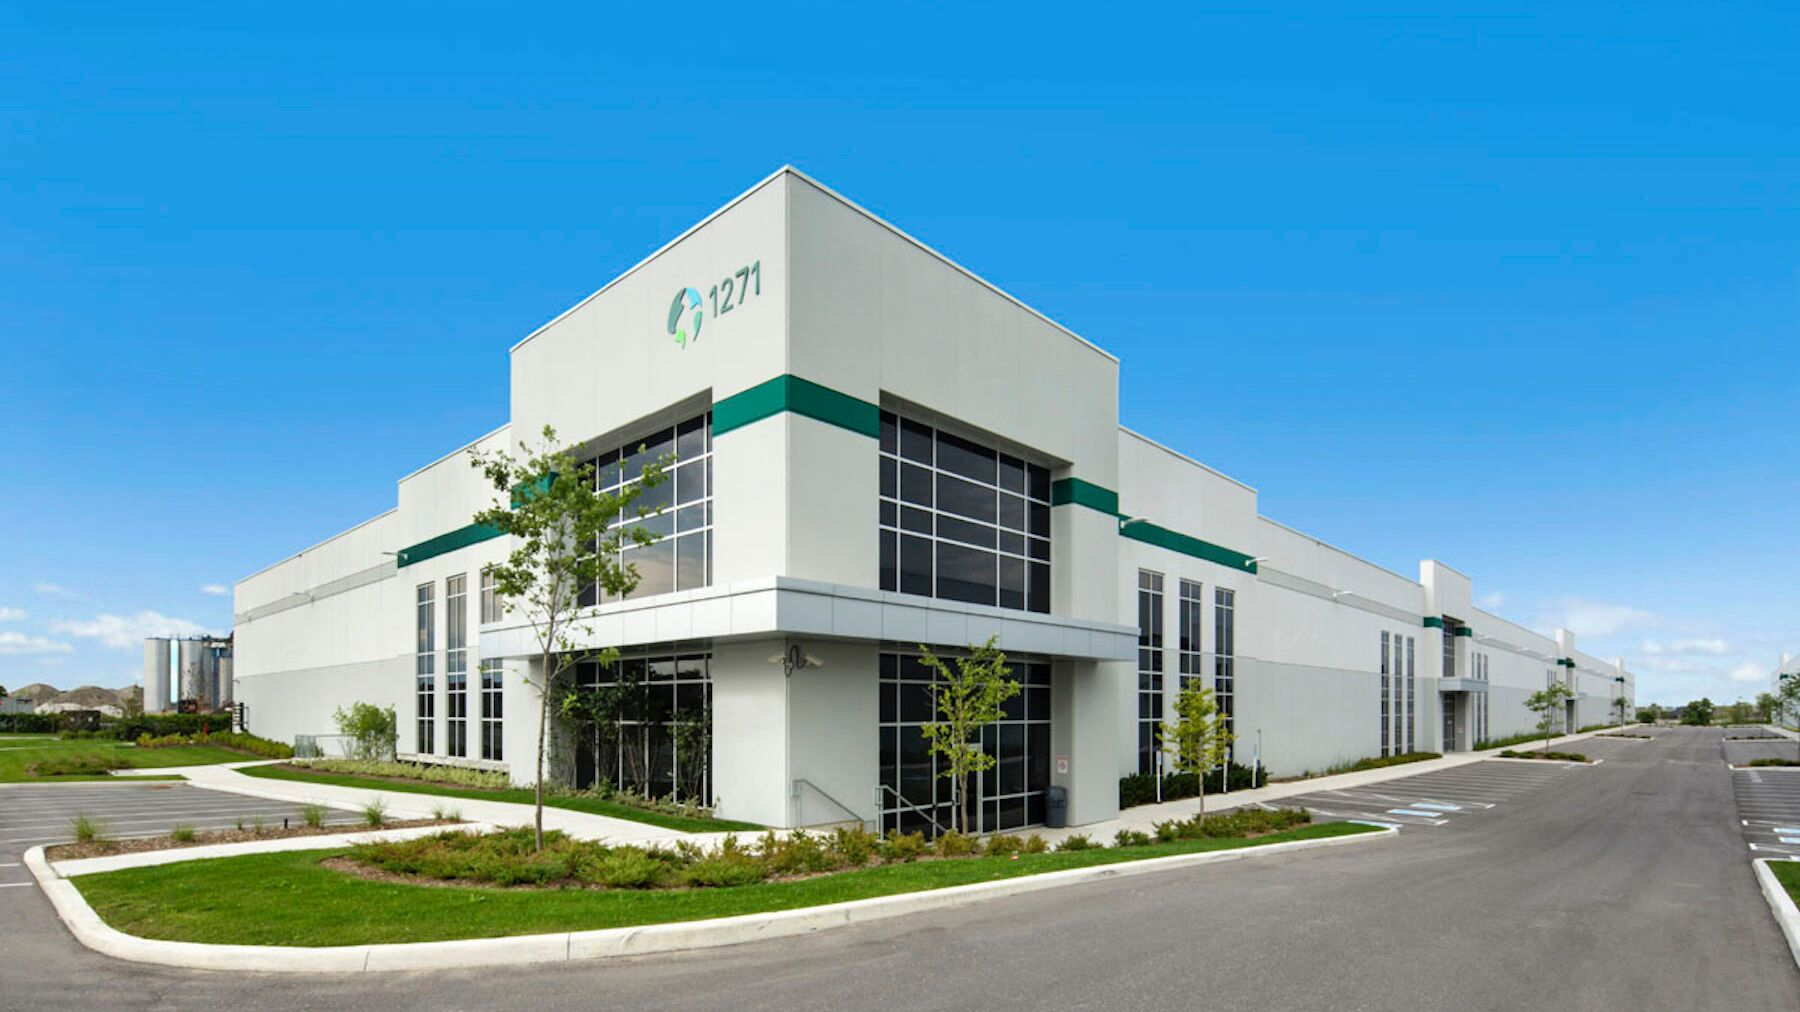 DPM-Prologis-Tapscott-DC-3-Property-Photo.jpg